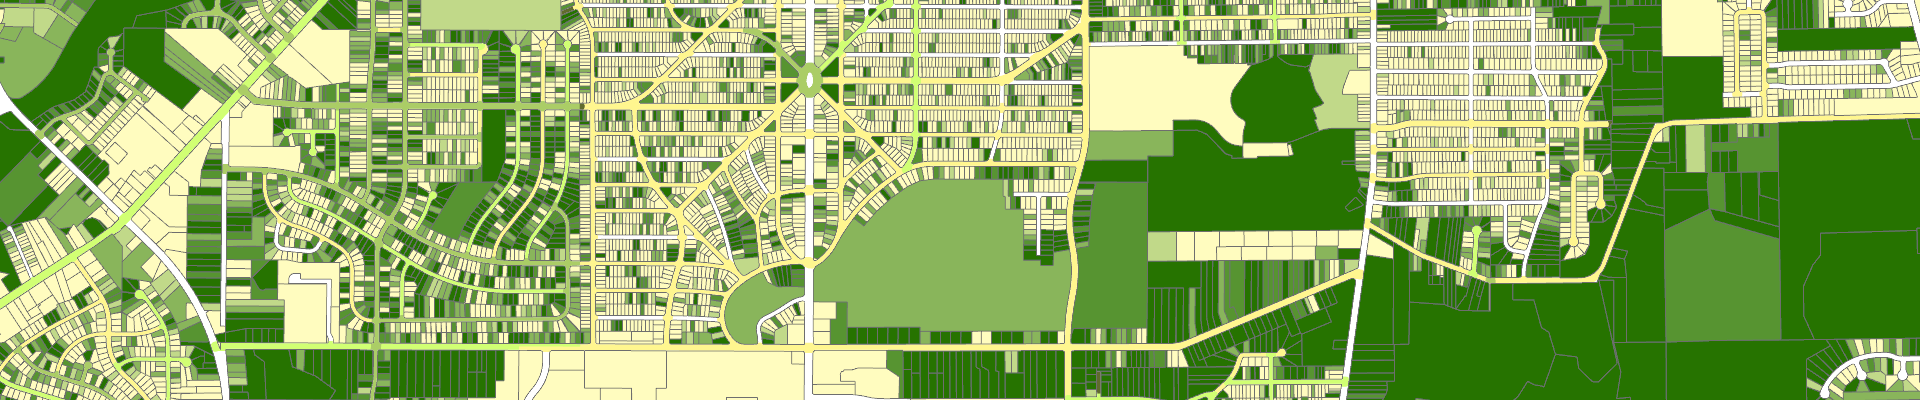 sample of urban tree canopy map